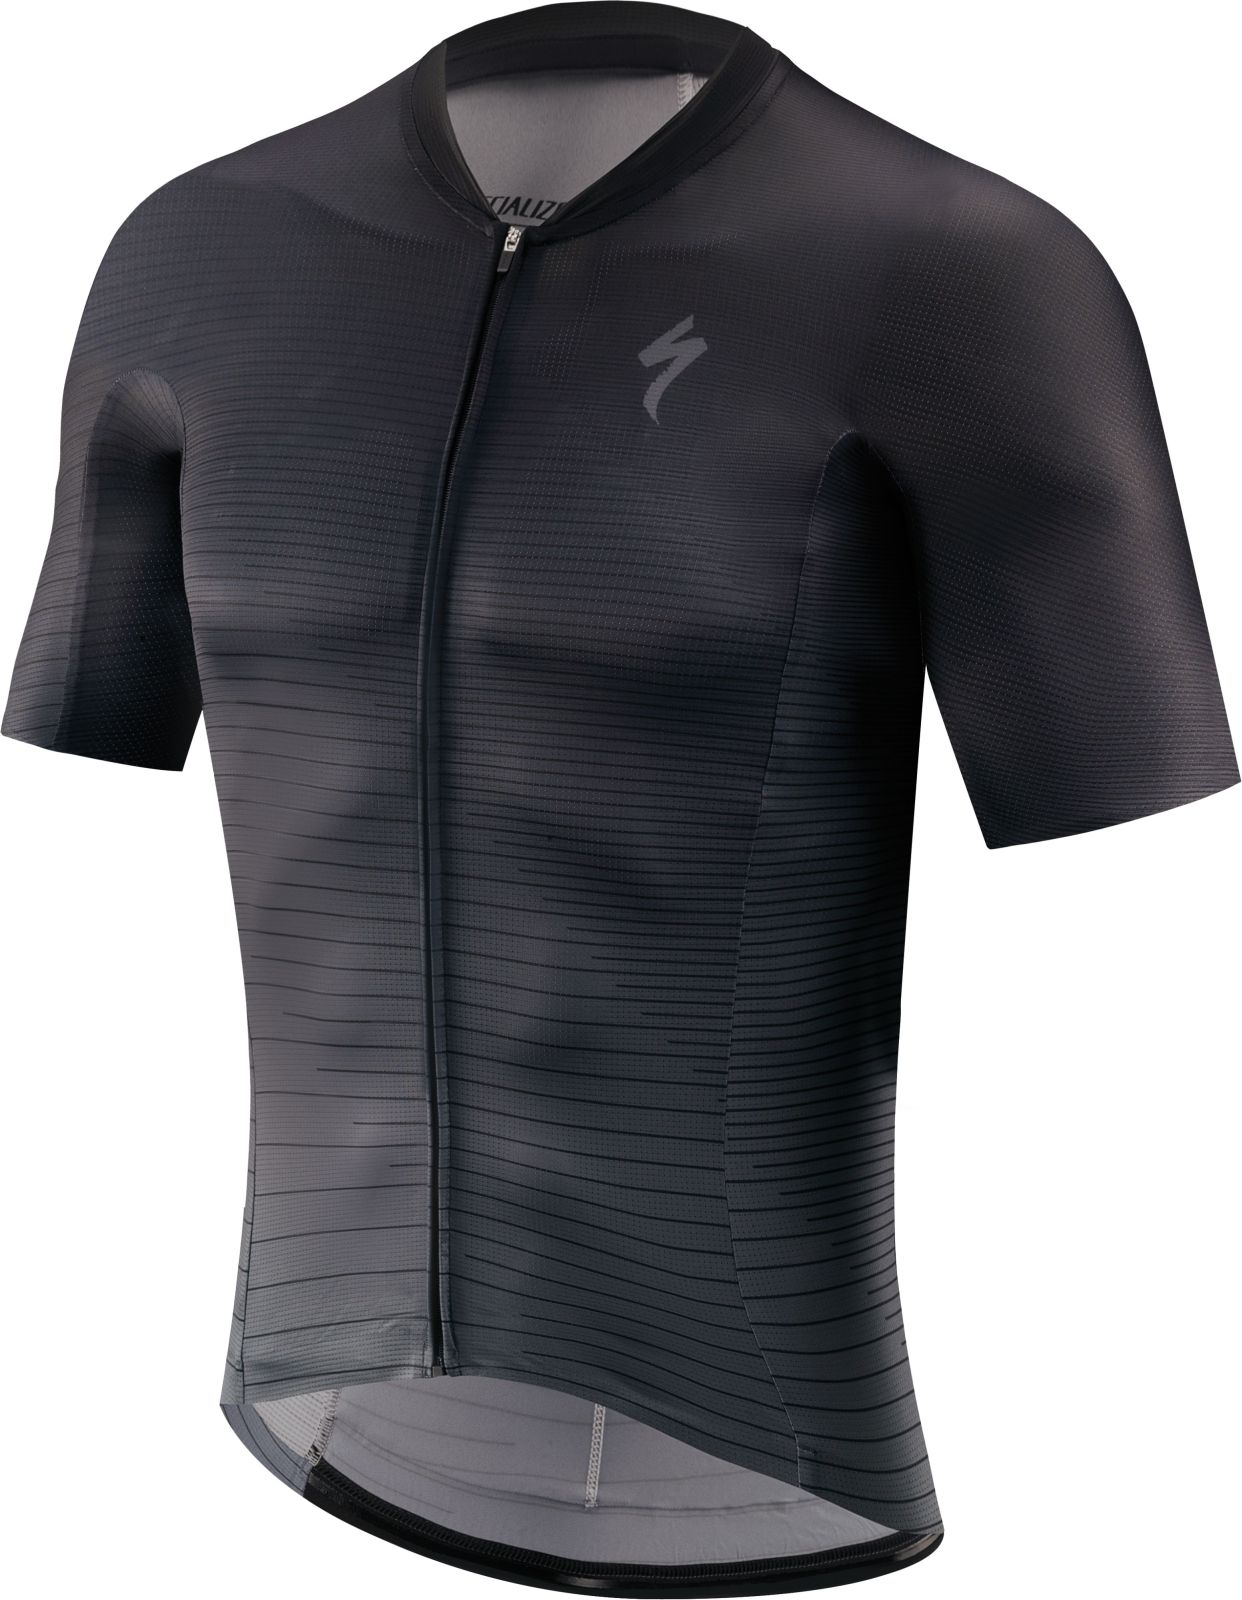 Specialized SL R Jersey SS - black/charcoal XXL